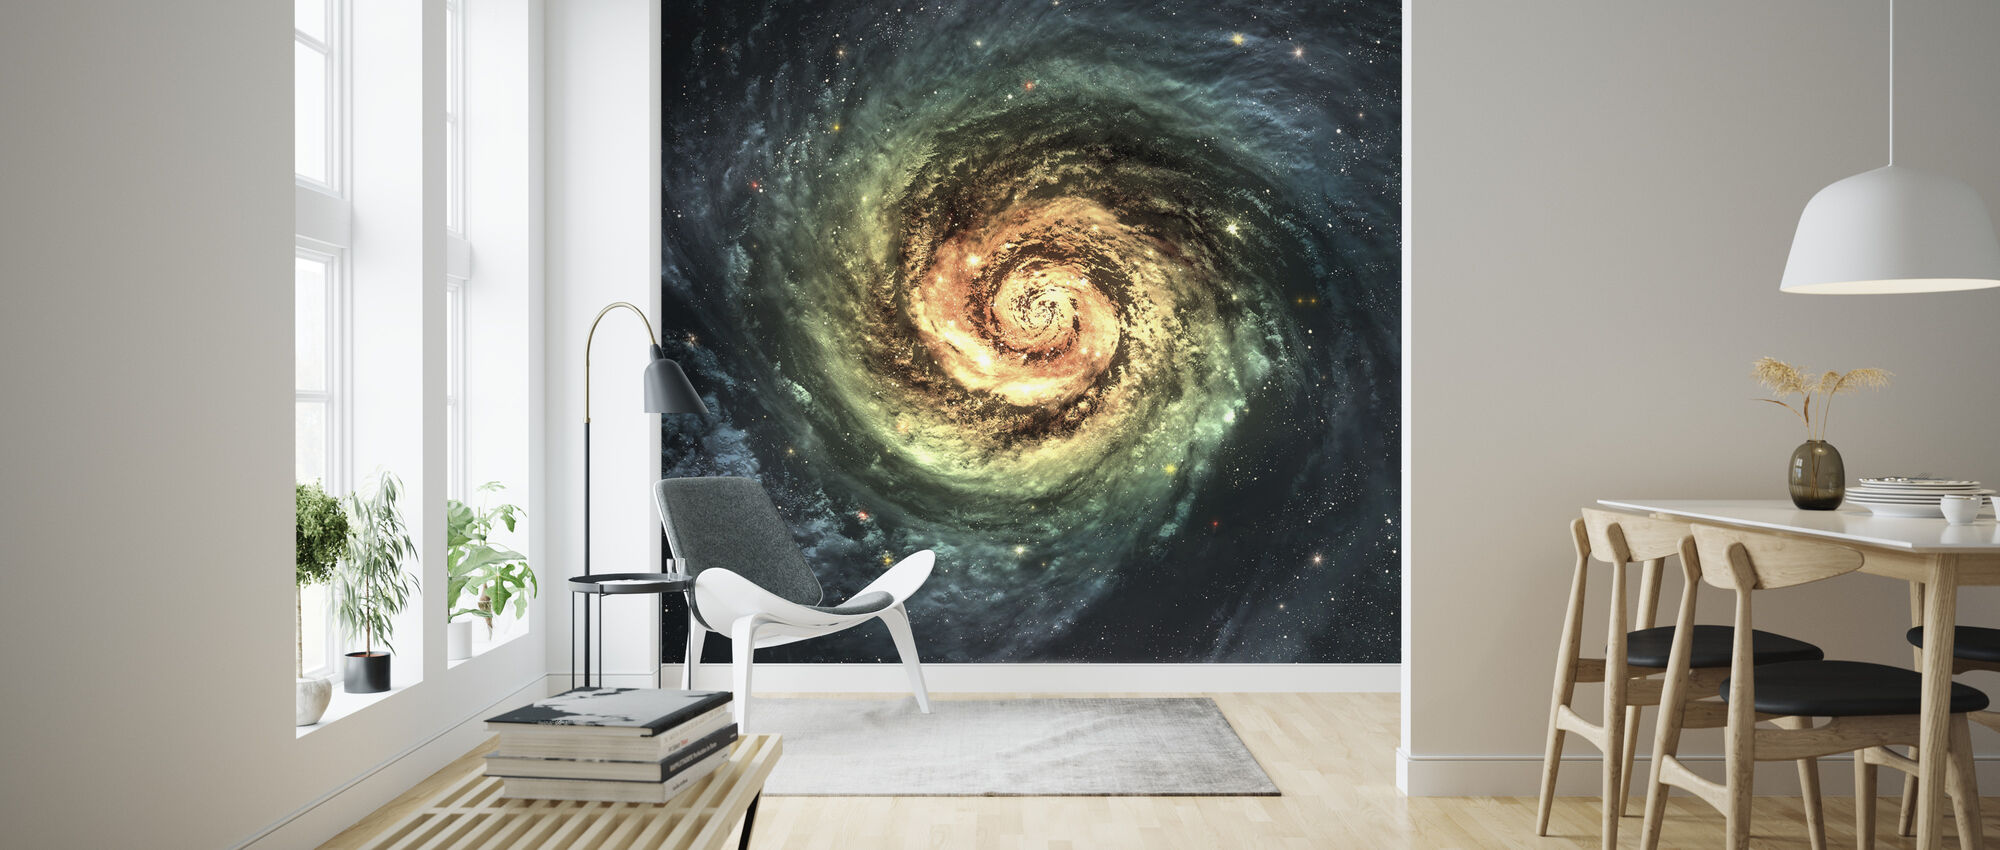 Spiral Galaxy - Wallpaper - Living Room